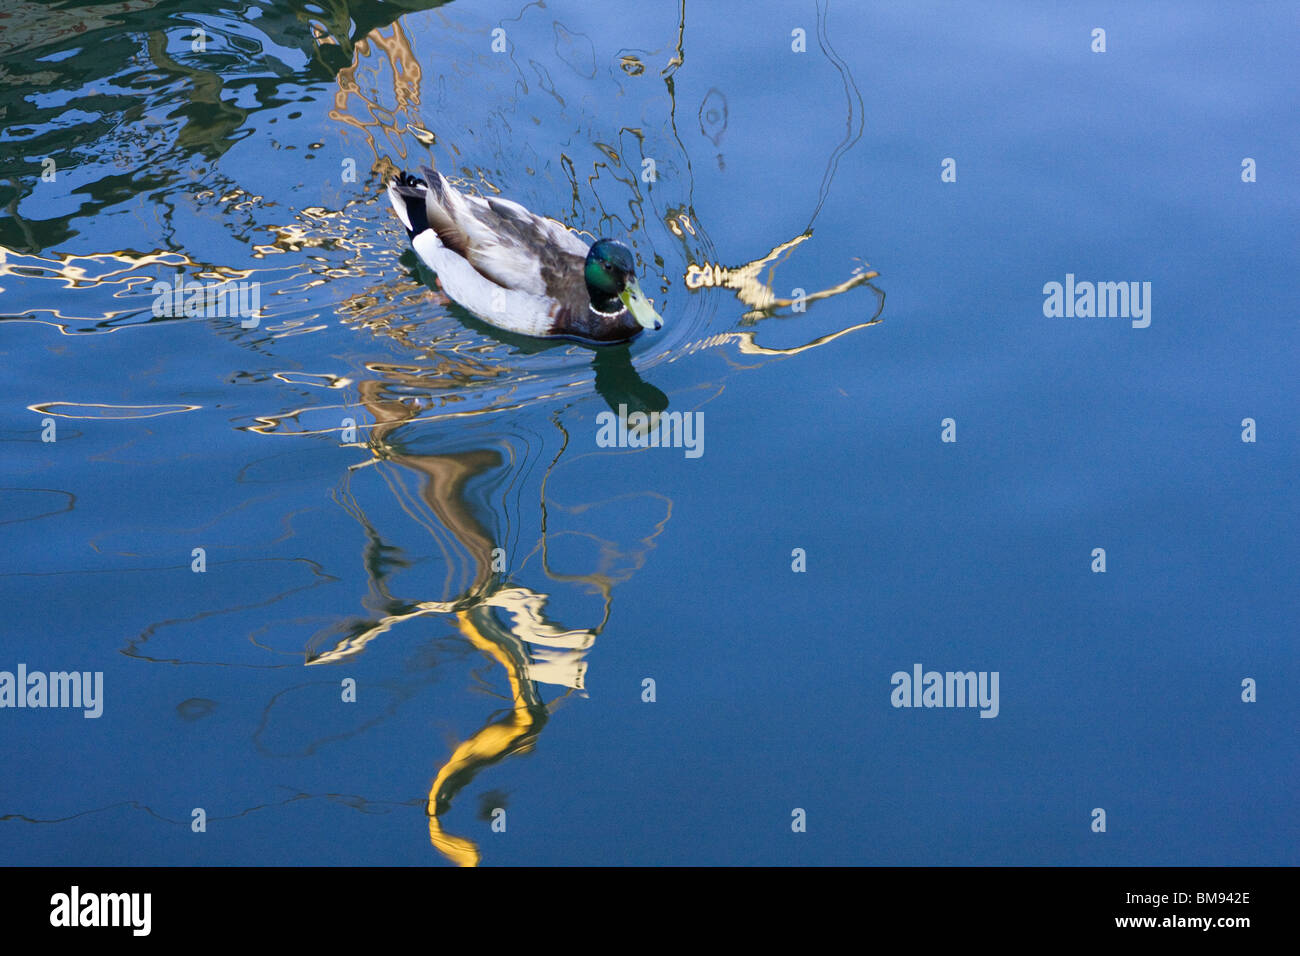 Duck Swimming In Ocean Reflection Shimmer - Stock Image